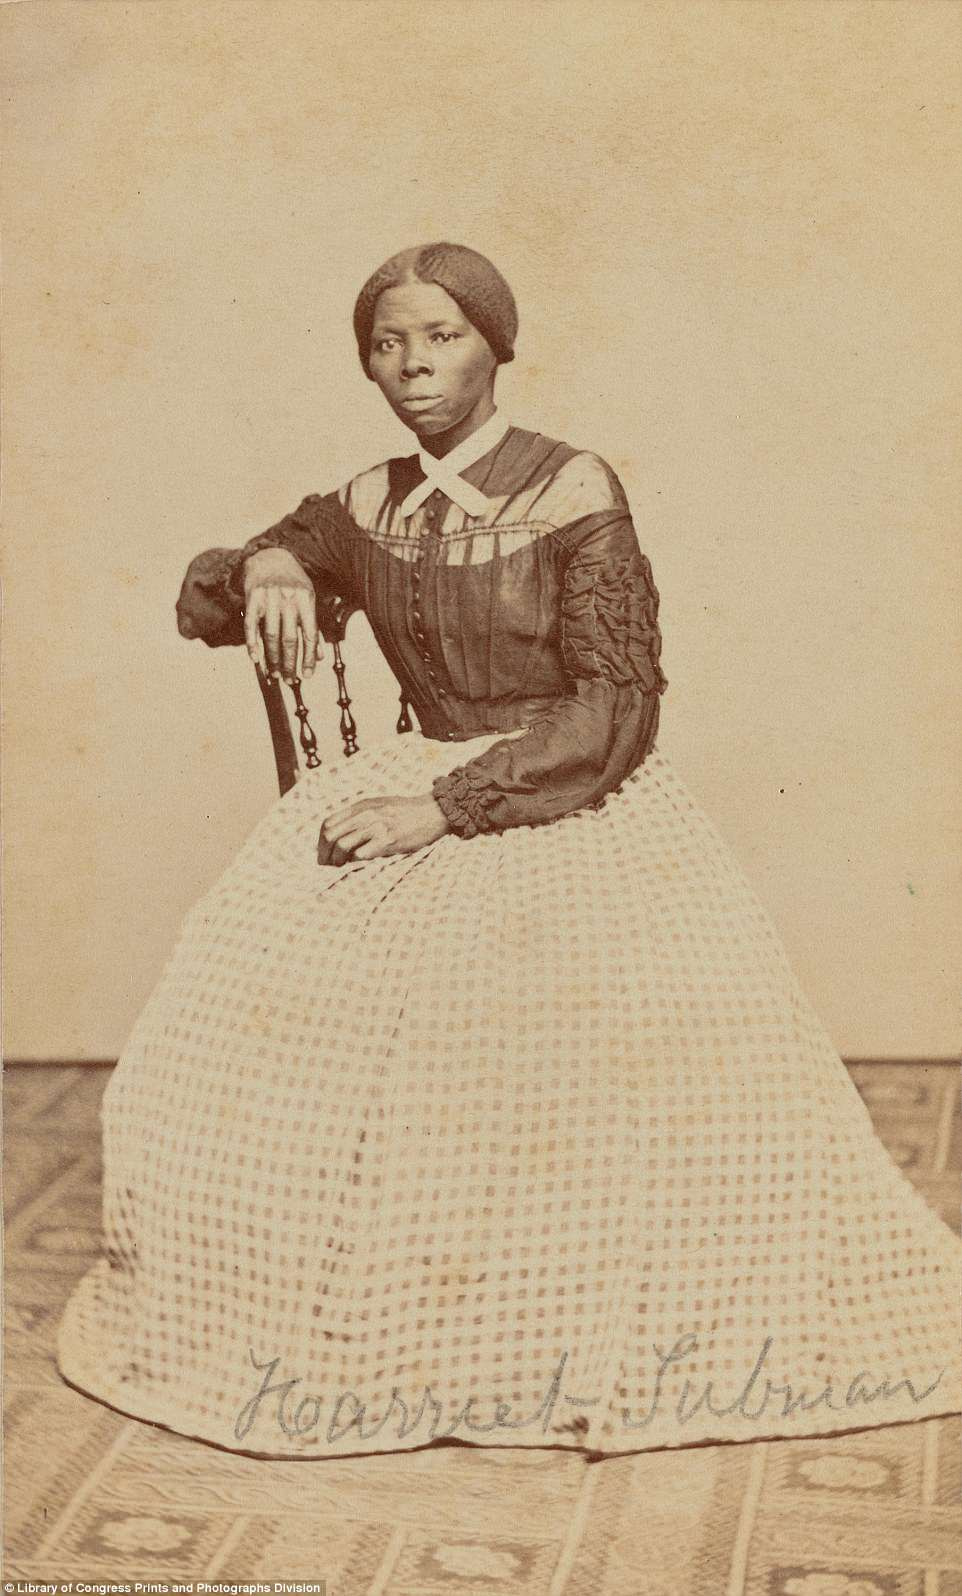 The photograph above shows Harriet Tubman - the famedAmerican abolitionist and political activist who escaped slavery and helped dozens of other enslaved blacks find freedom